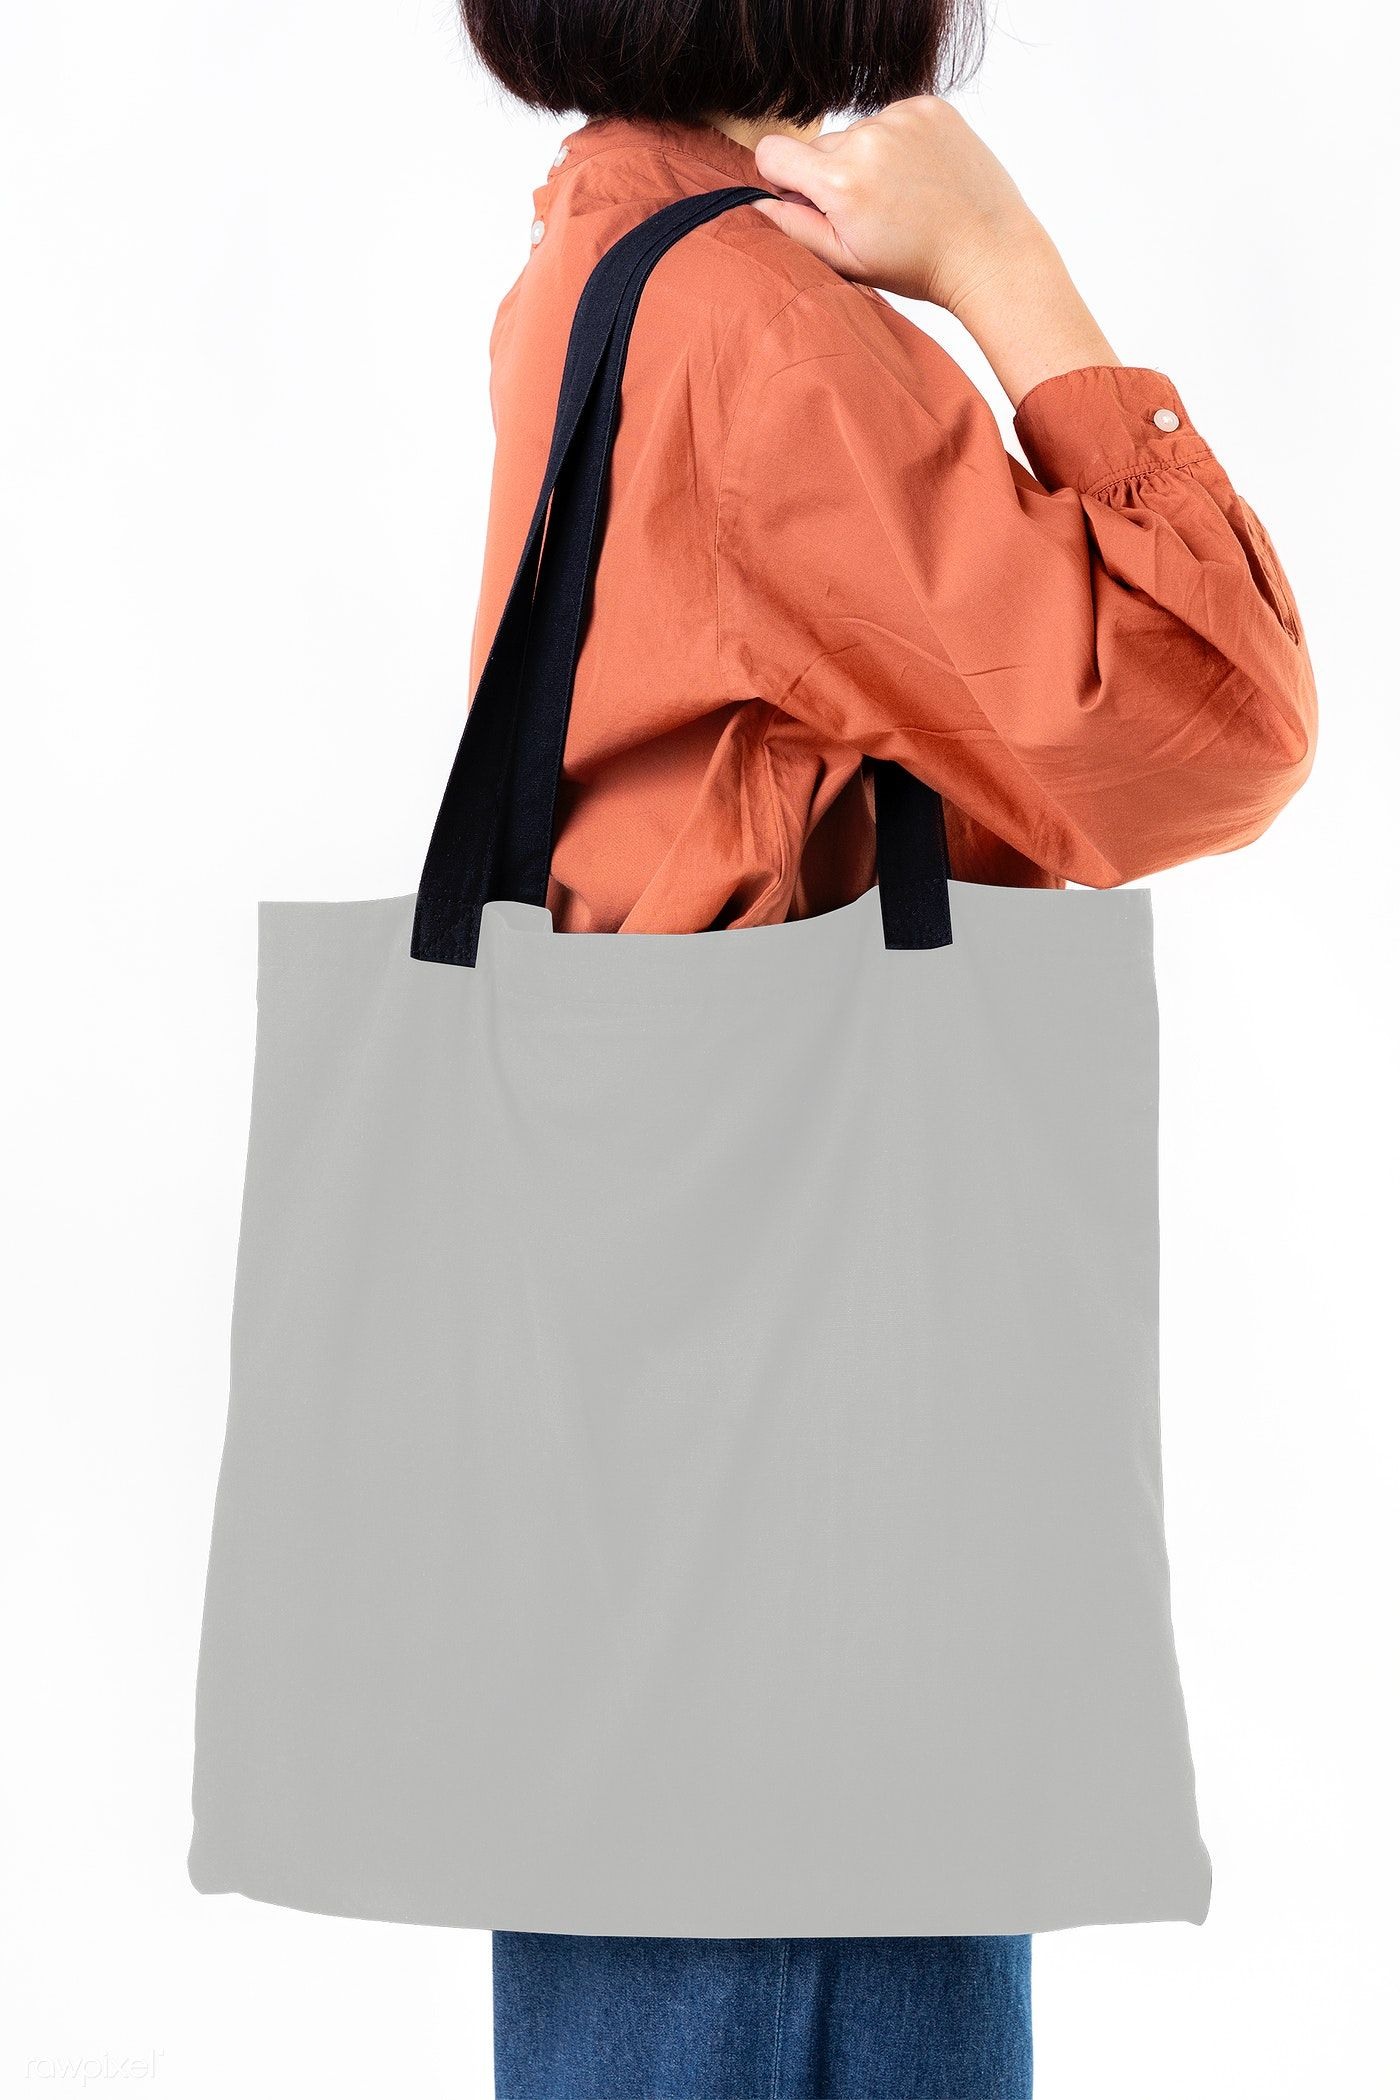 Woman With A Tote Bag Transparent Png Free Image By Rawpixel Com Mckinsey Tote Bag Blank Tote Bag Woven Tote Bag